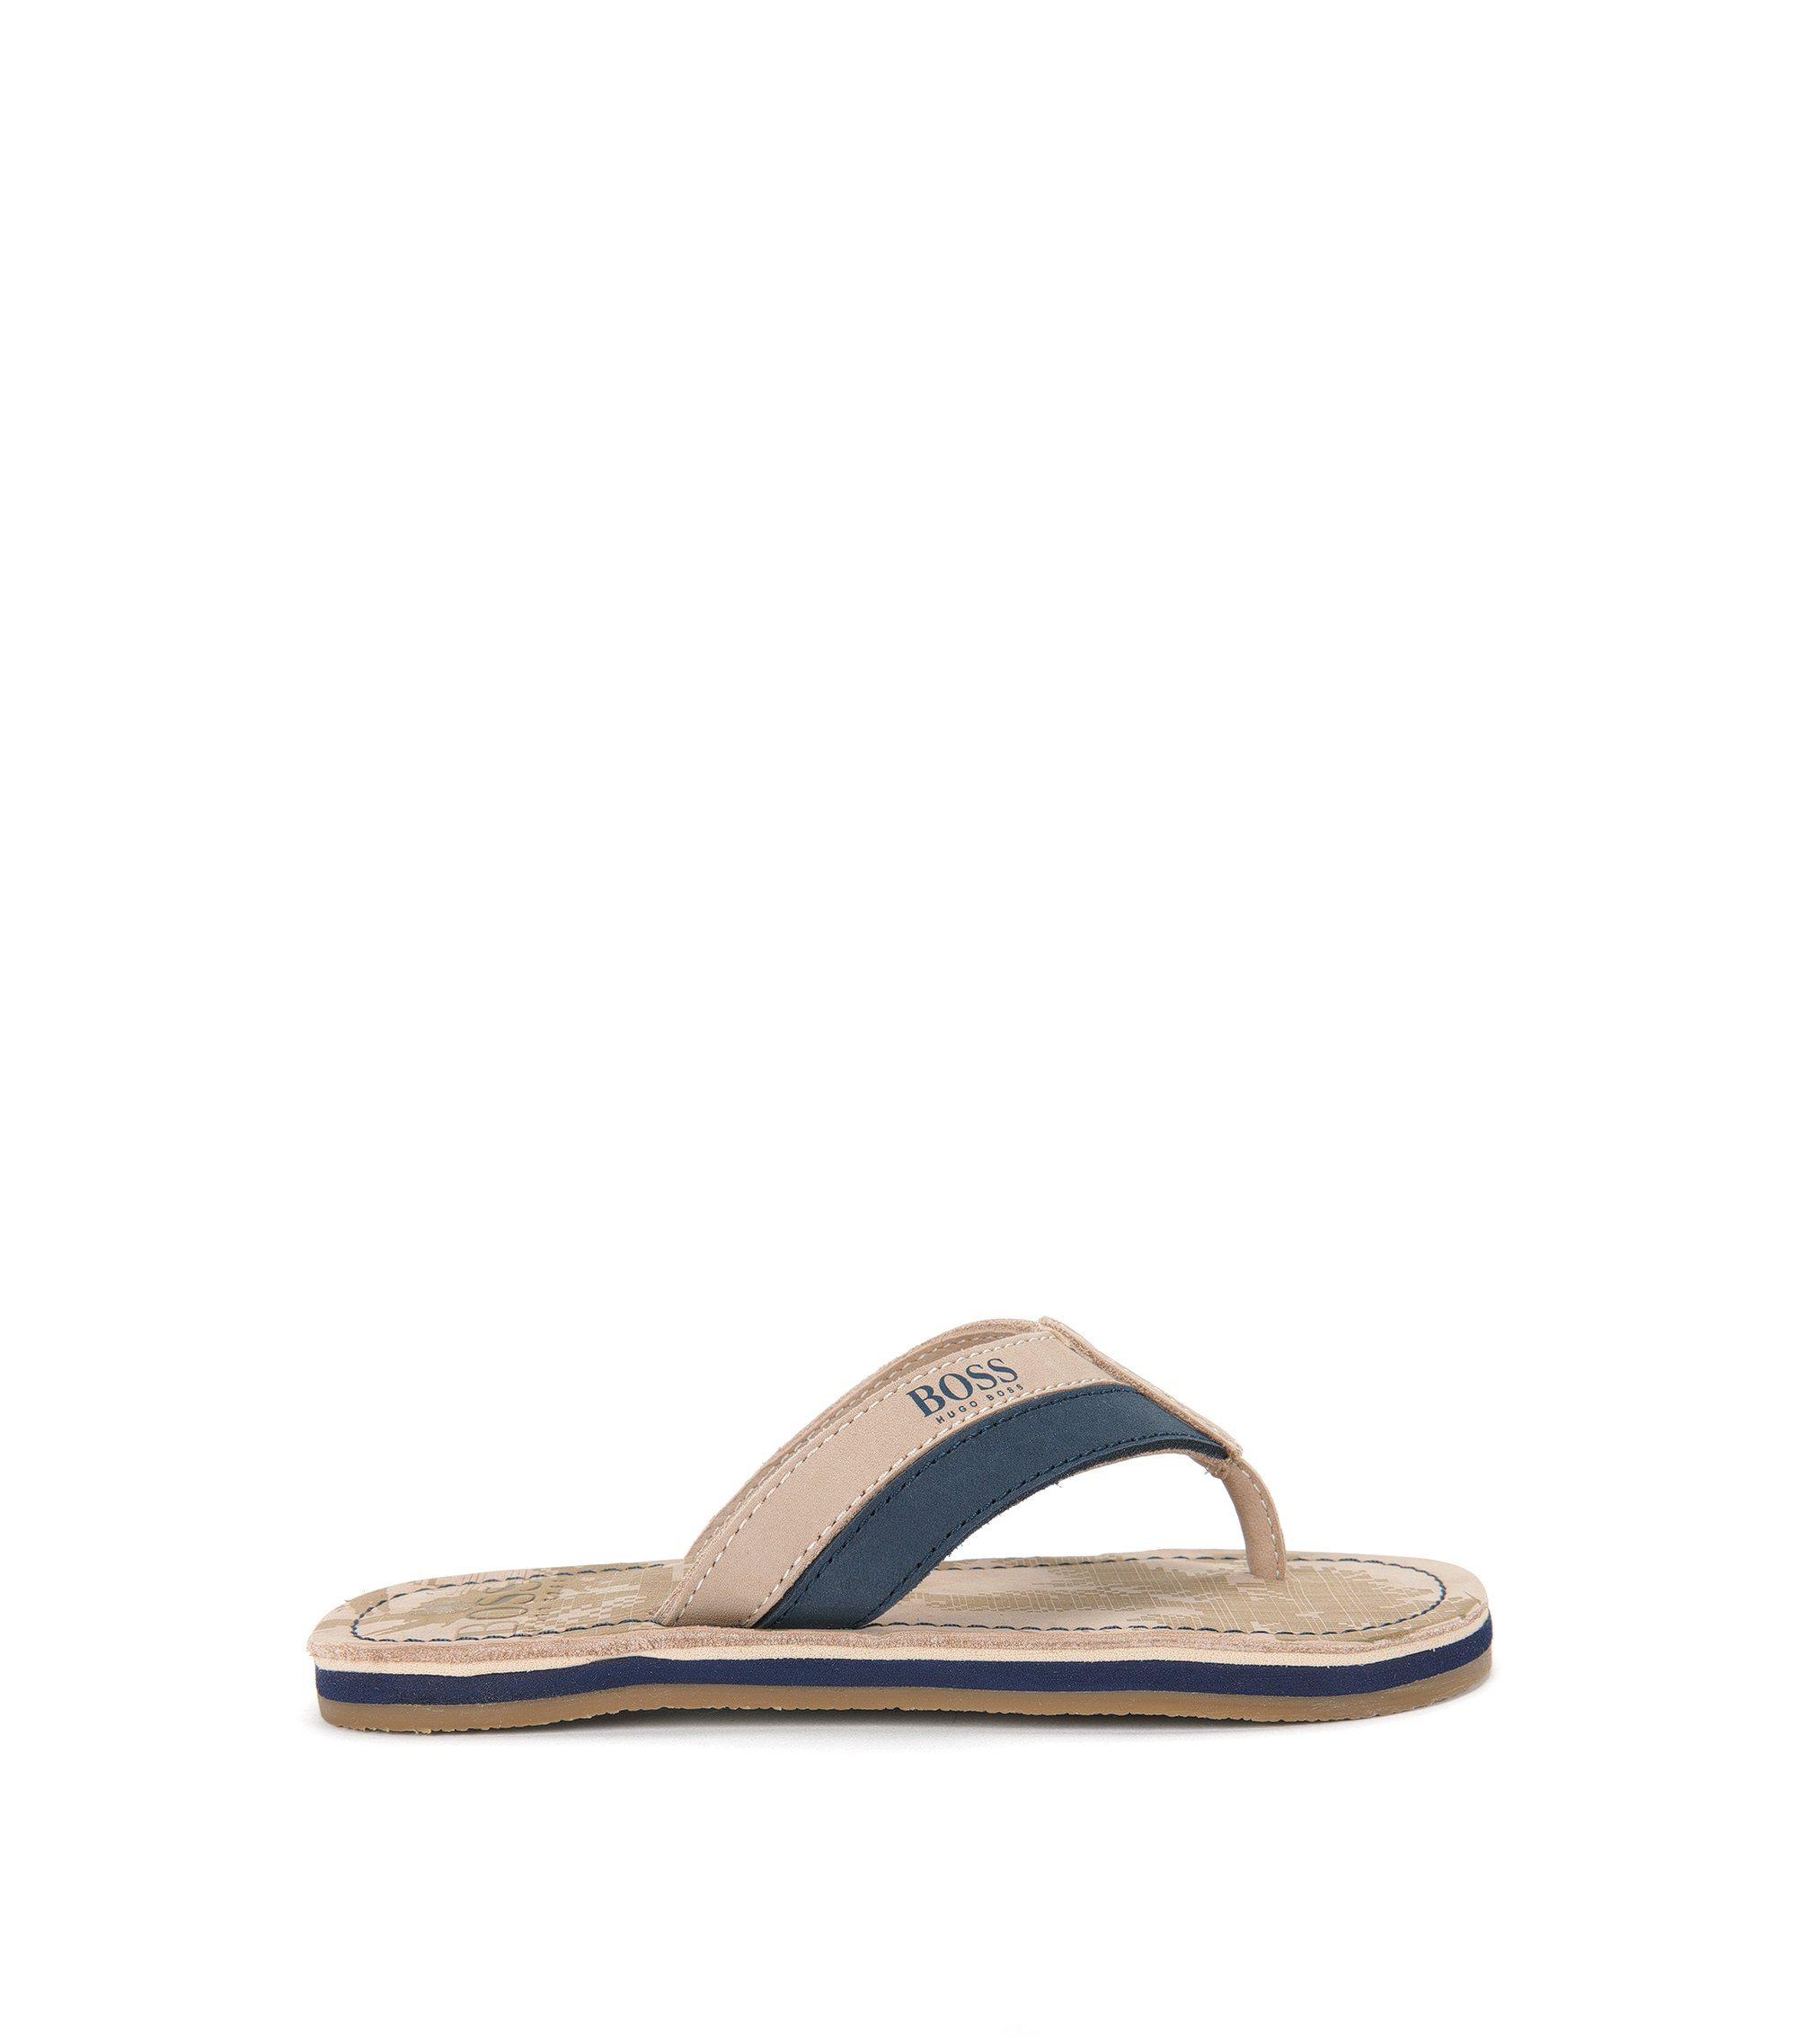 'J29111' | Boys Leather Thong Sandals, Beige